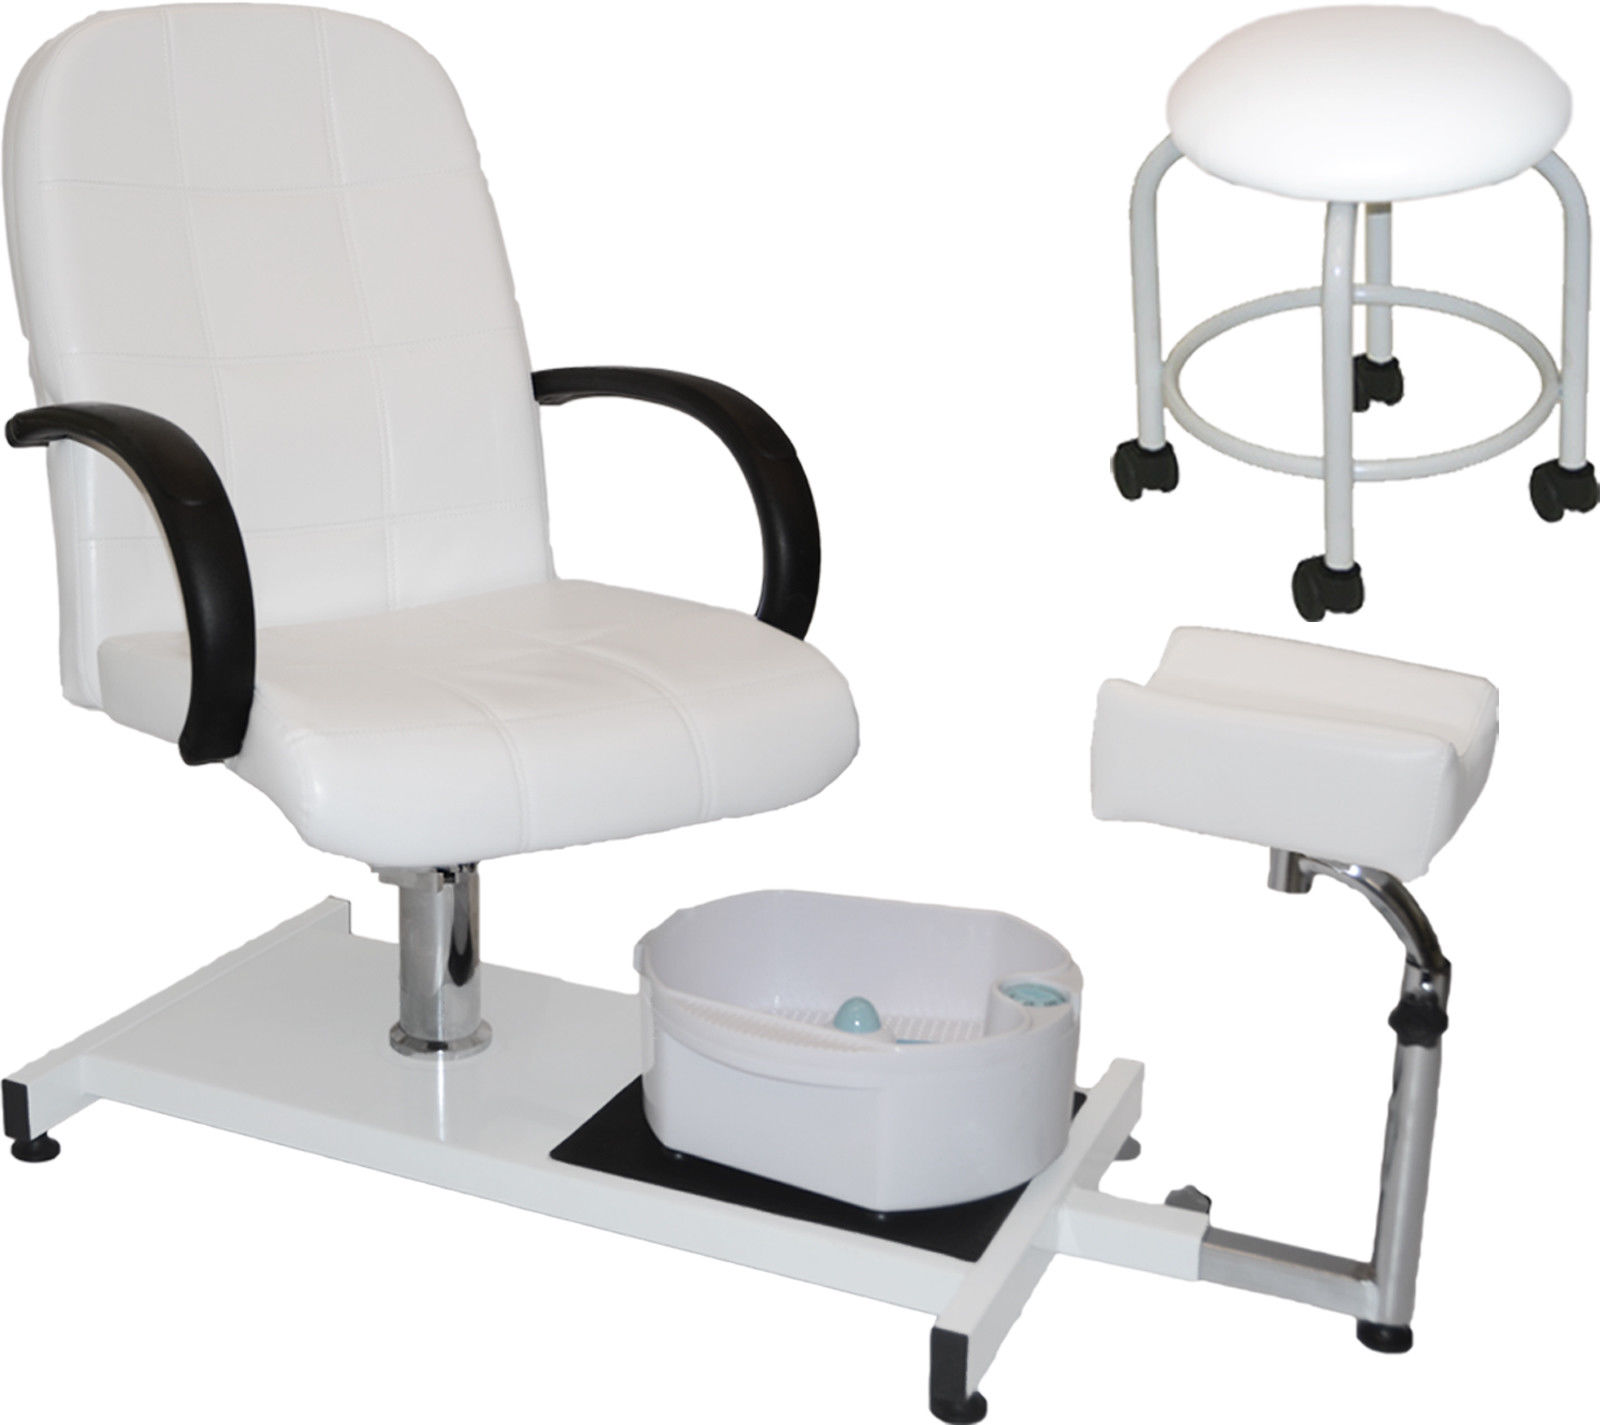 Beauty Salon Chair New Pedicure Station Massage Foot Spa Beauty Salon Chair Fmb100